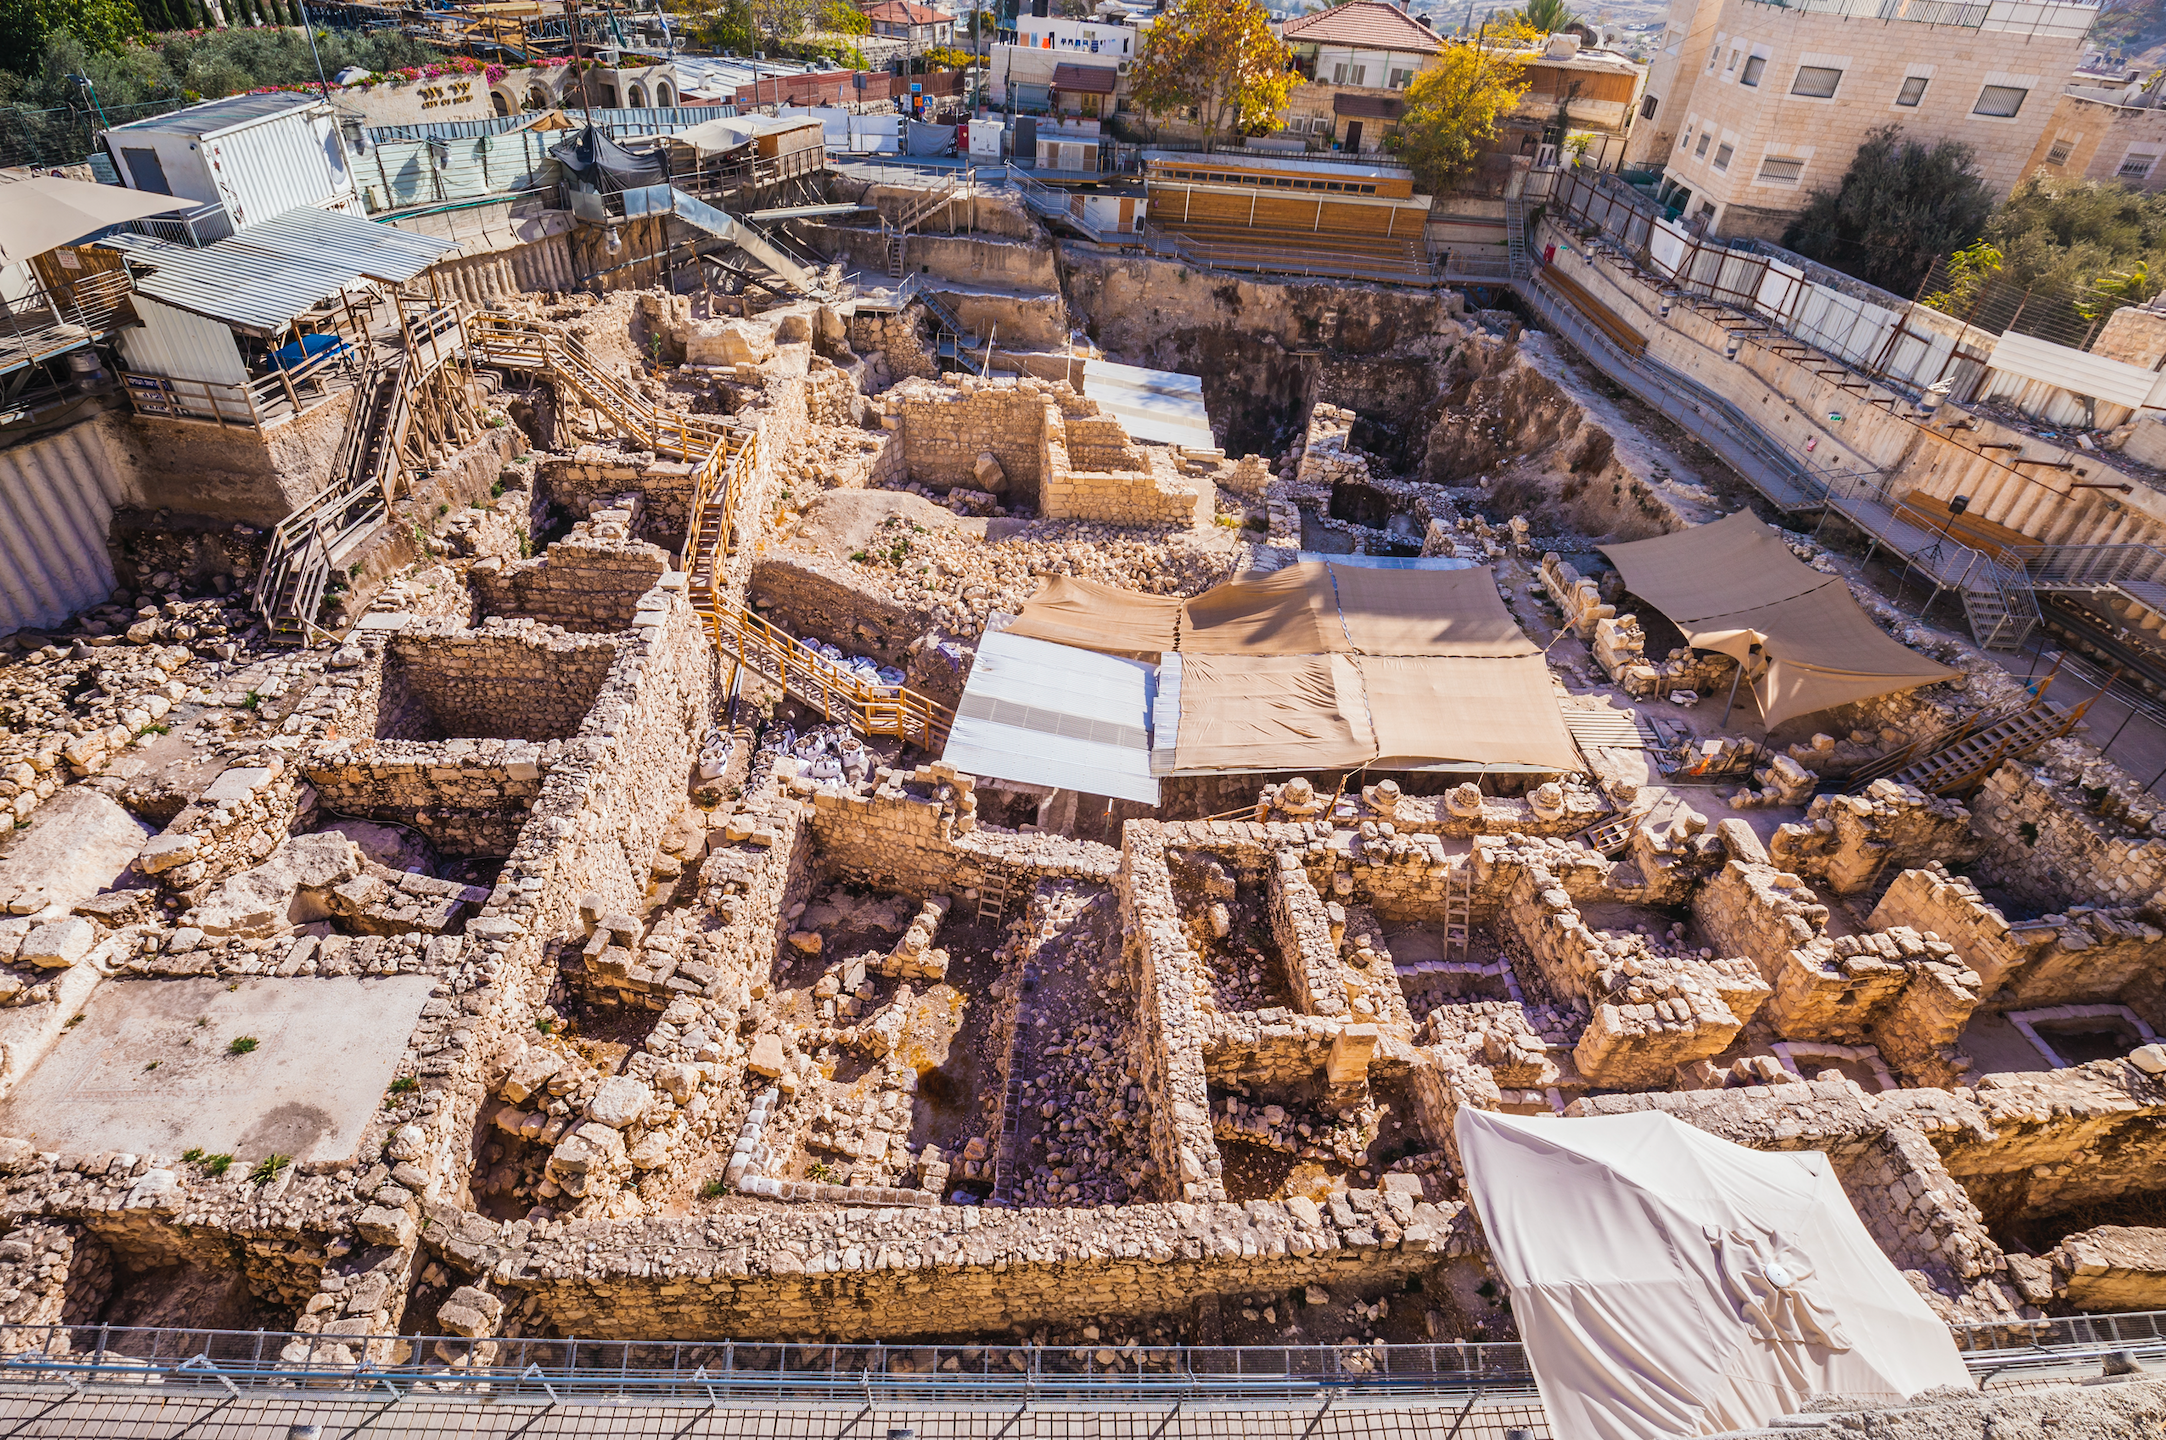 Givati Parking Lot Excavation. Photo by Koby Harati. Courtesy of the City of David